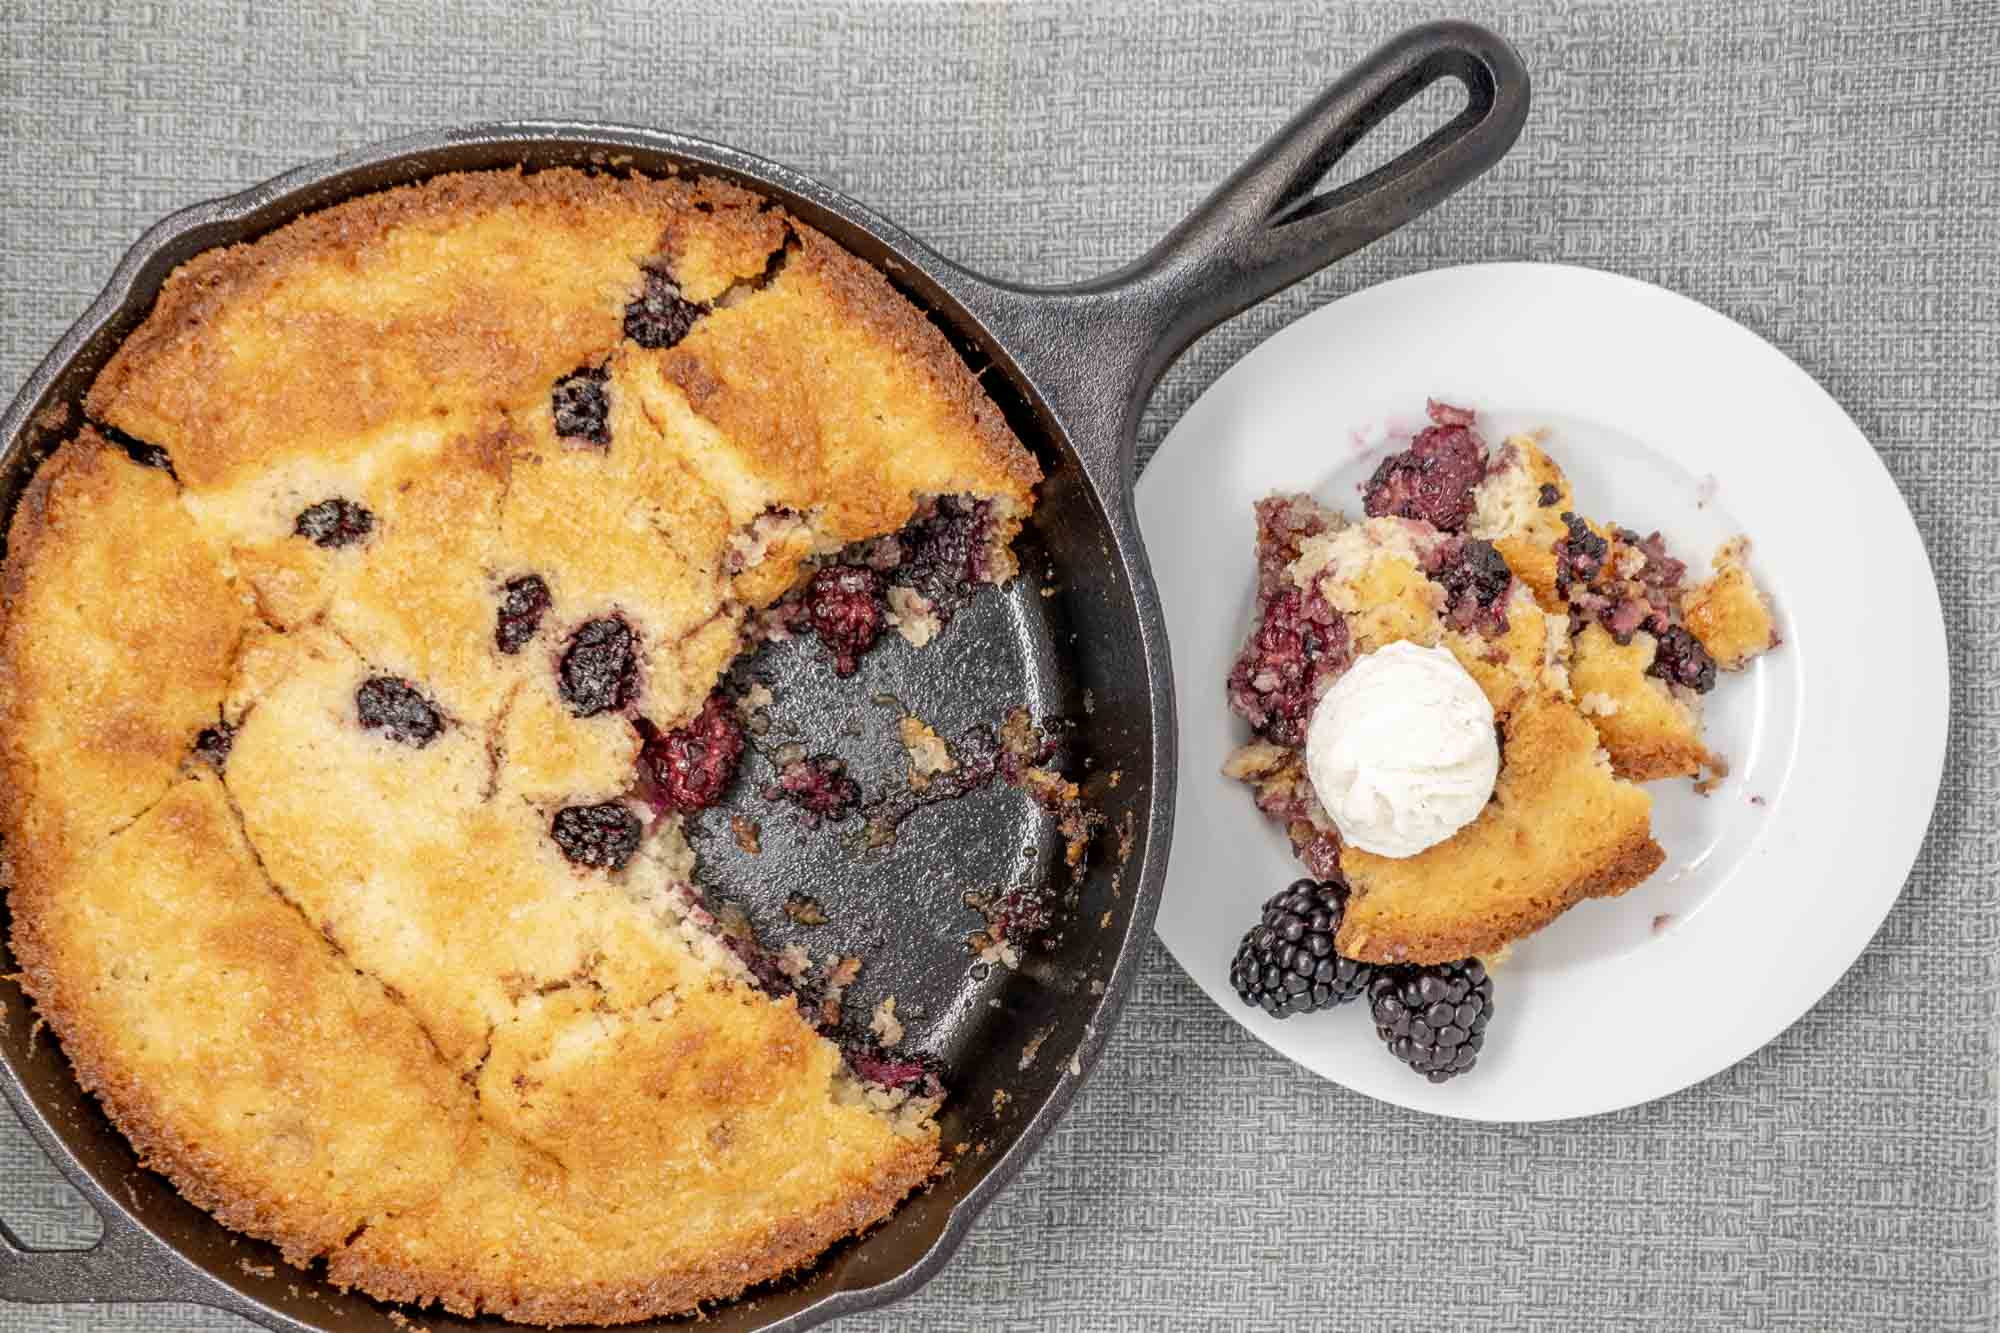 Portion of blackberry cobbler topped with ice cream on a plate next to the rest of the cobbler in a cast iron skillet